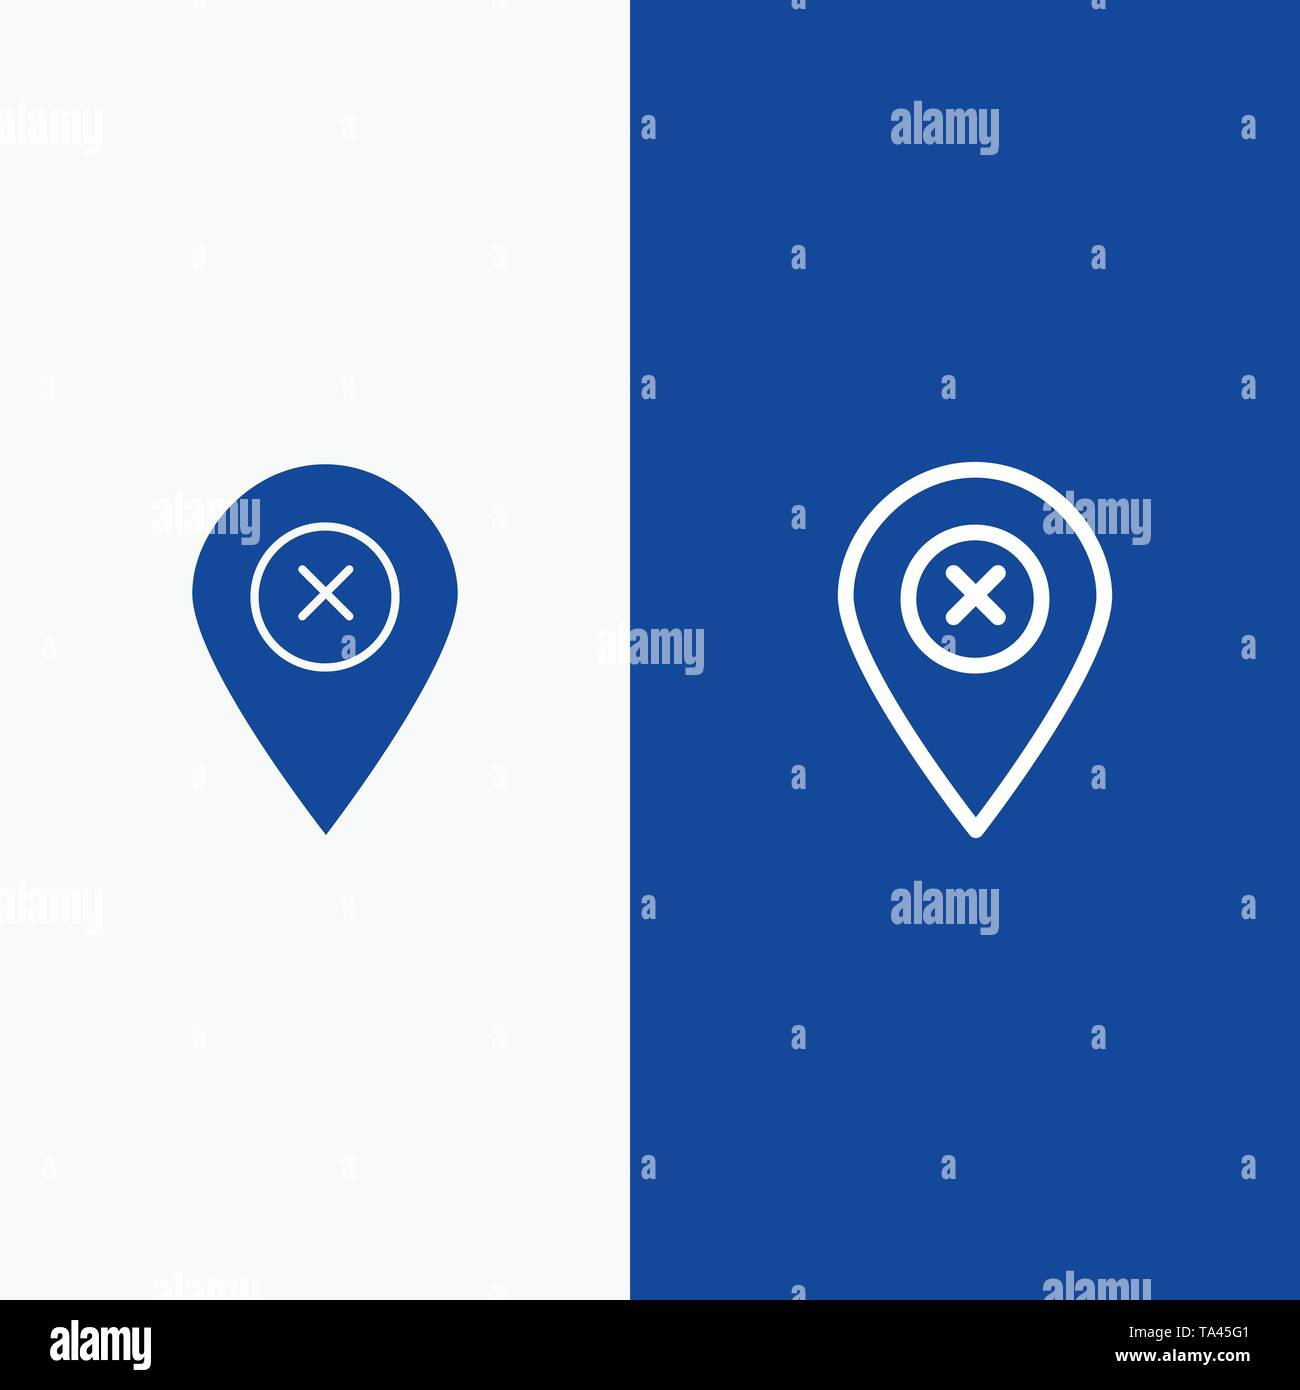 Location, Map, Navigation, Pin Line and Glyph Solid icon Blue banner Line and Glyph Solid icon Blue banner - Stock Image